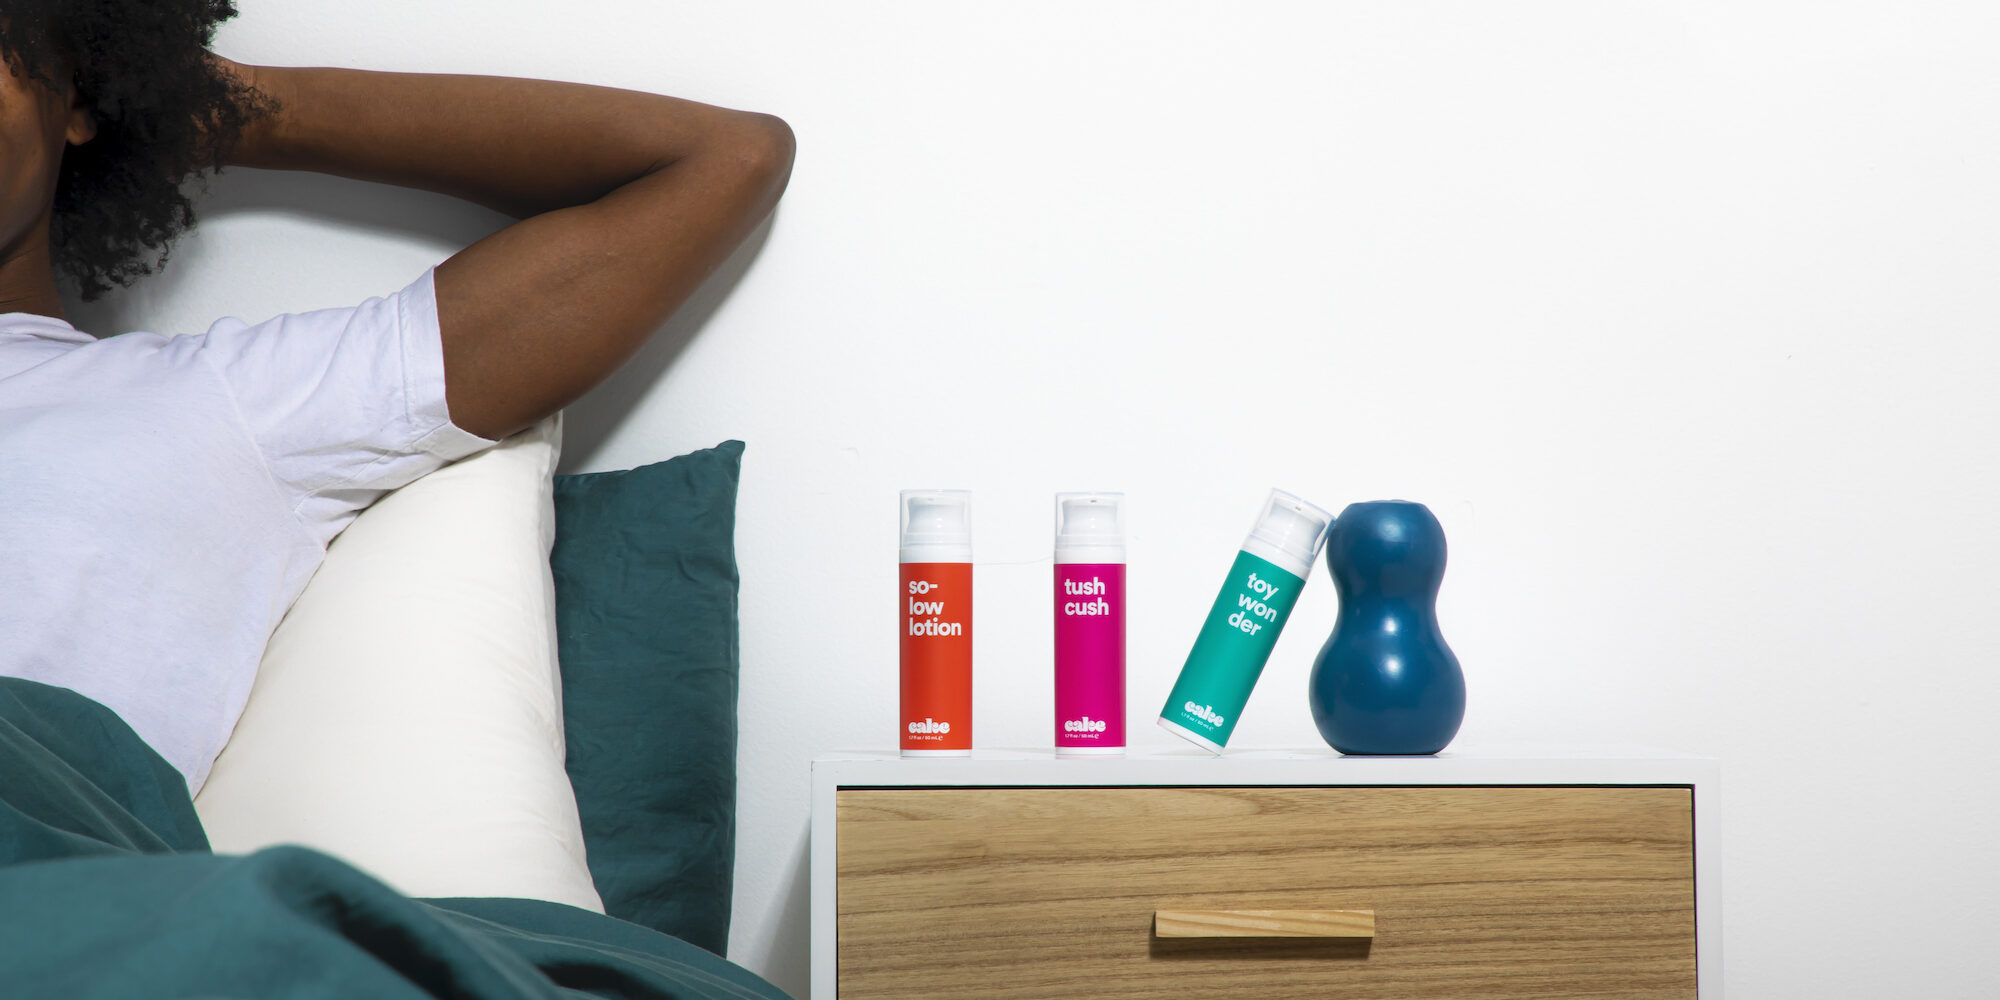 Sexual Wellness Brand Cake Closes $4M Seed Round, Prepares For Nationwide Walmart Launch